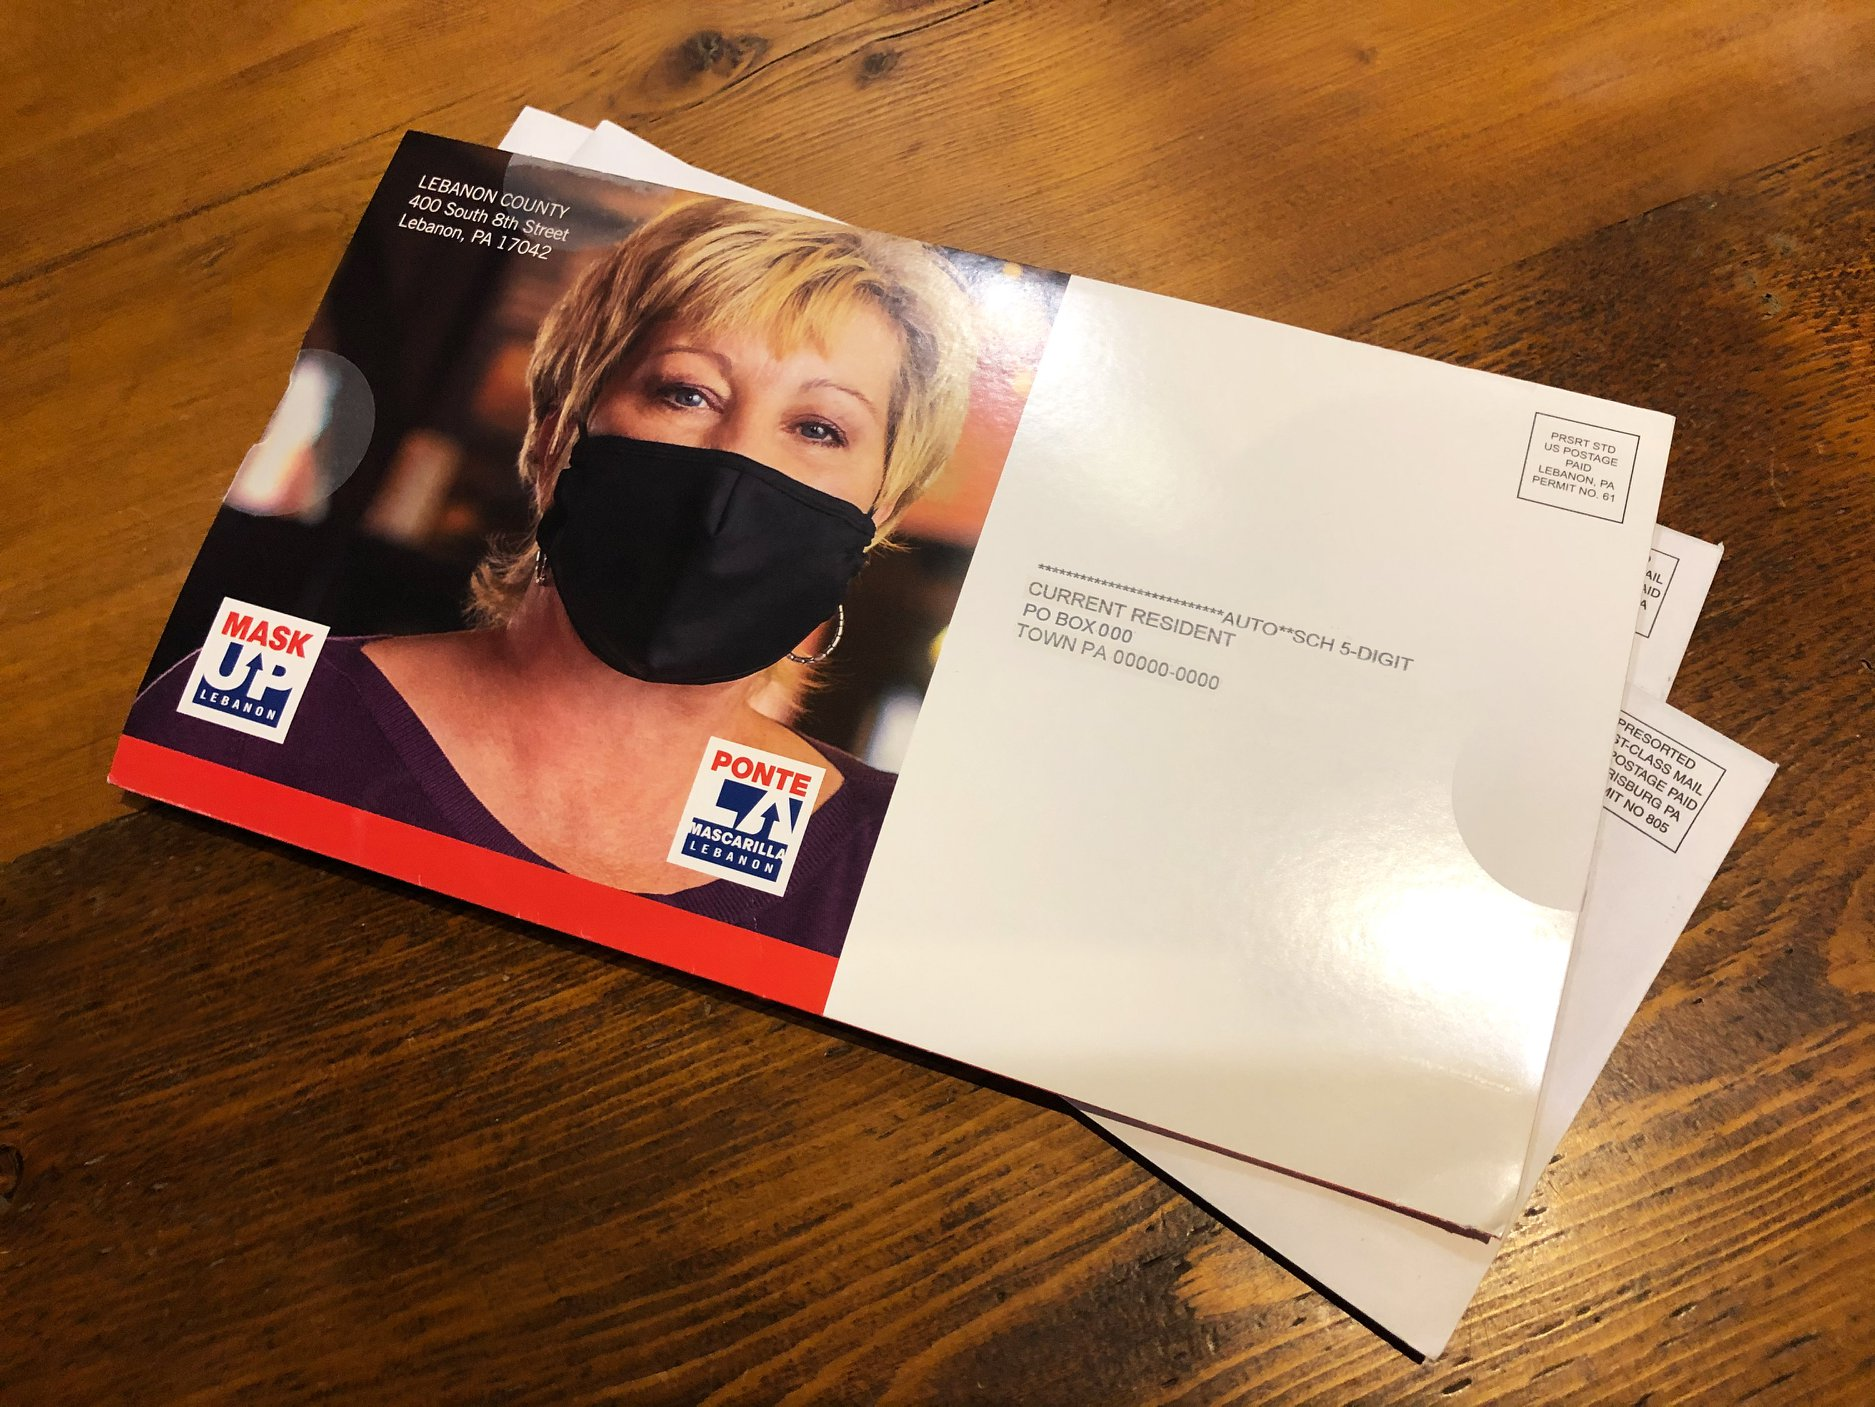 Mask Up mails masks to 55,000 county residences as part of CARES settlement